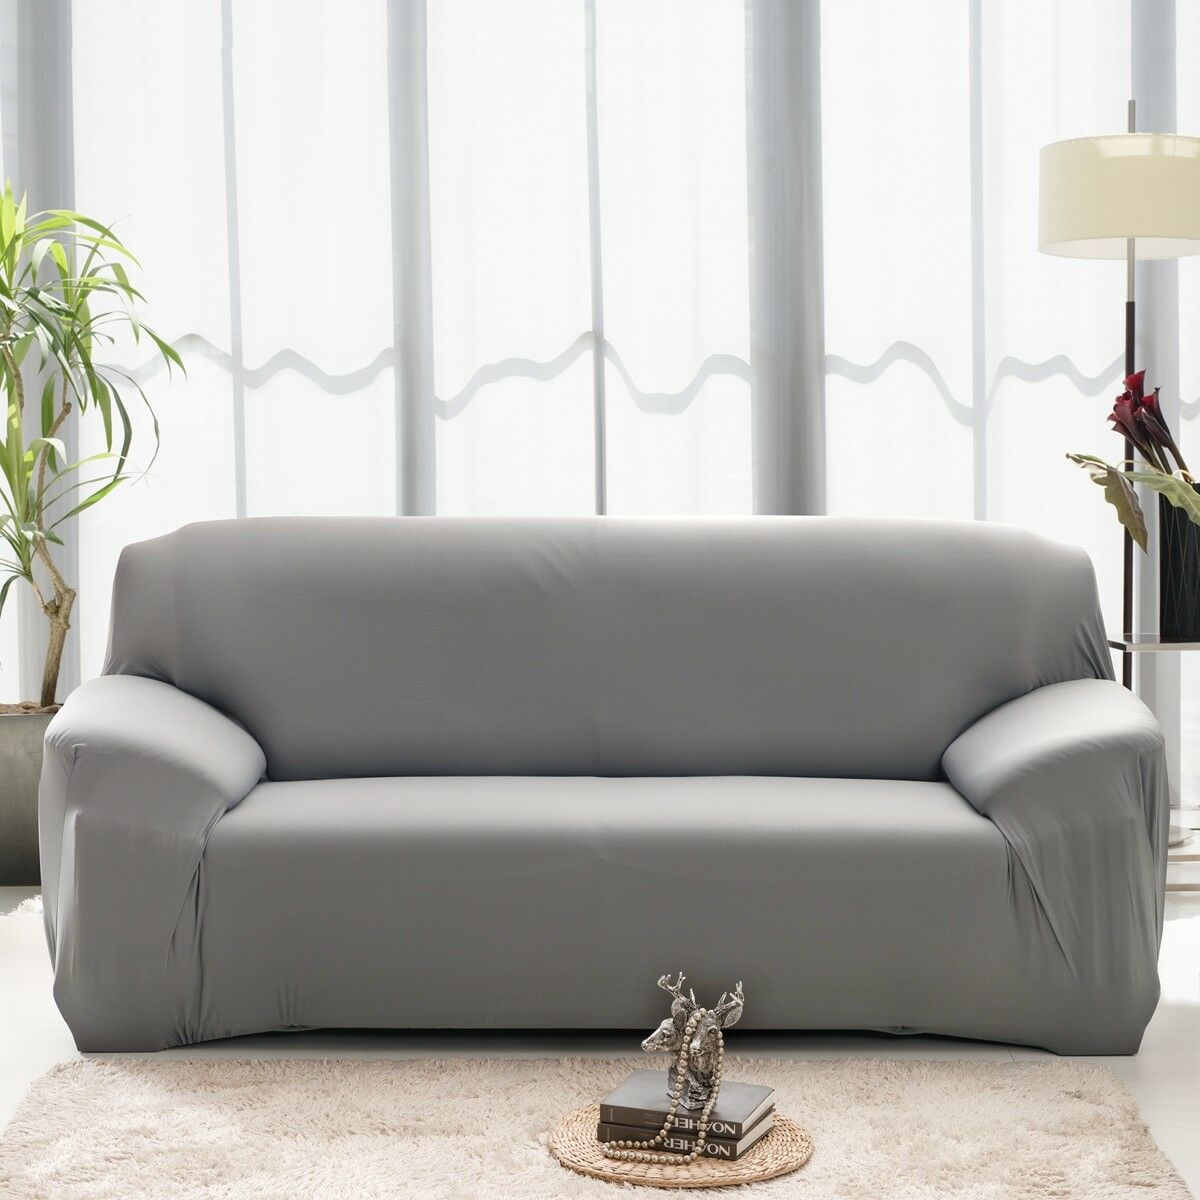 EASY-Stretch-Couch-Sofa-Lounge-Covers-Recliner-1-2-3-Seater-Dining-Chair-Cover thumbnail 74